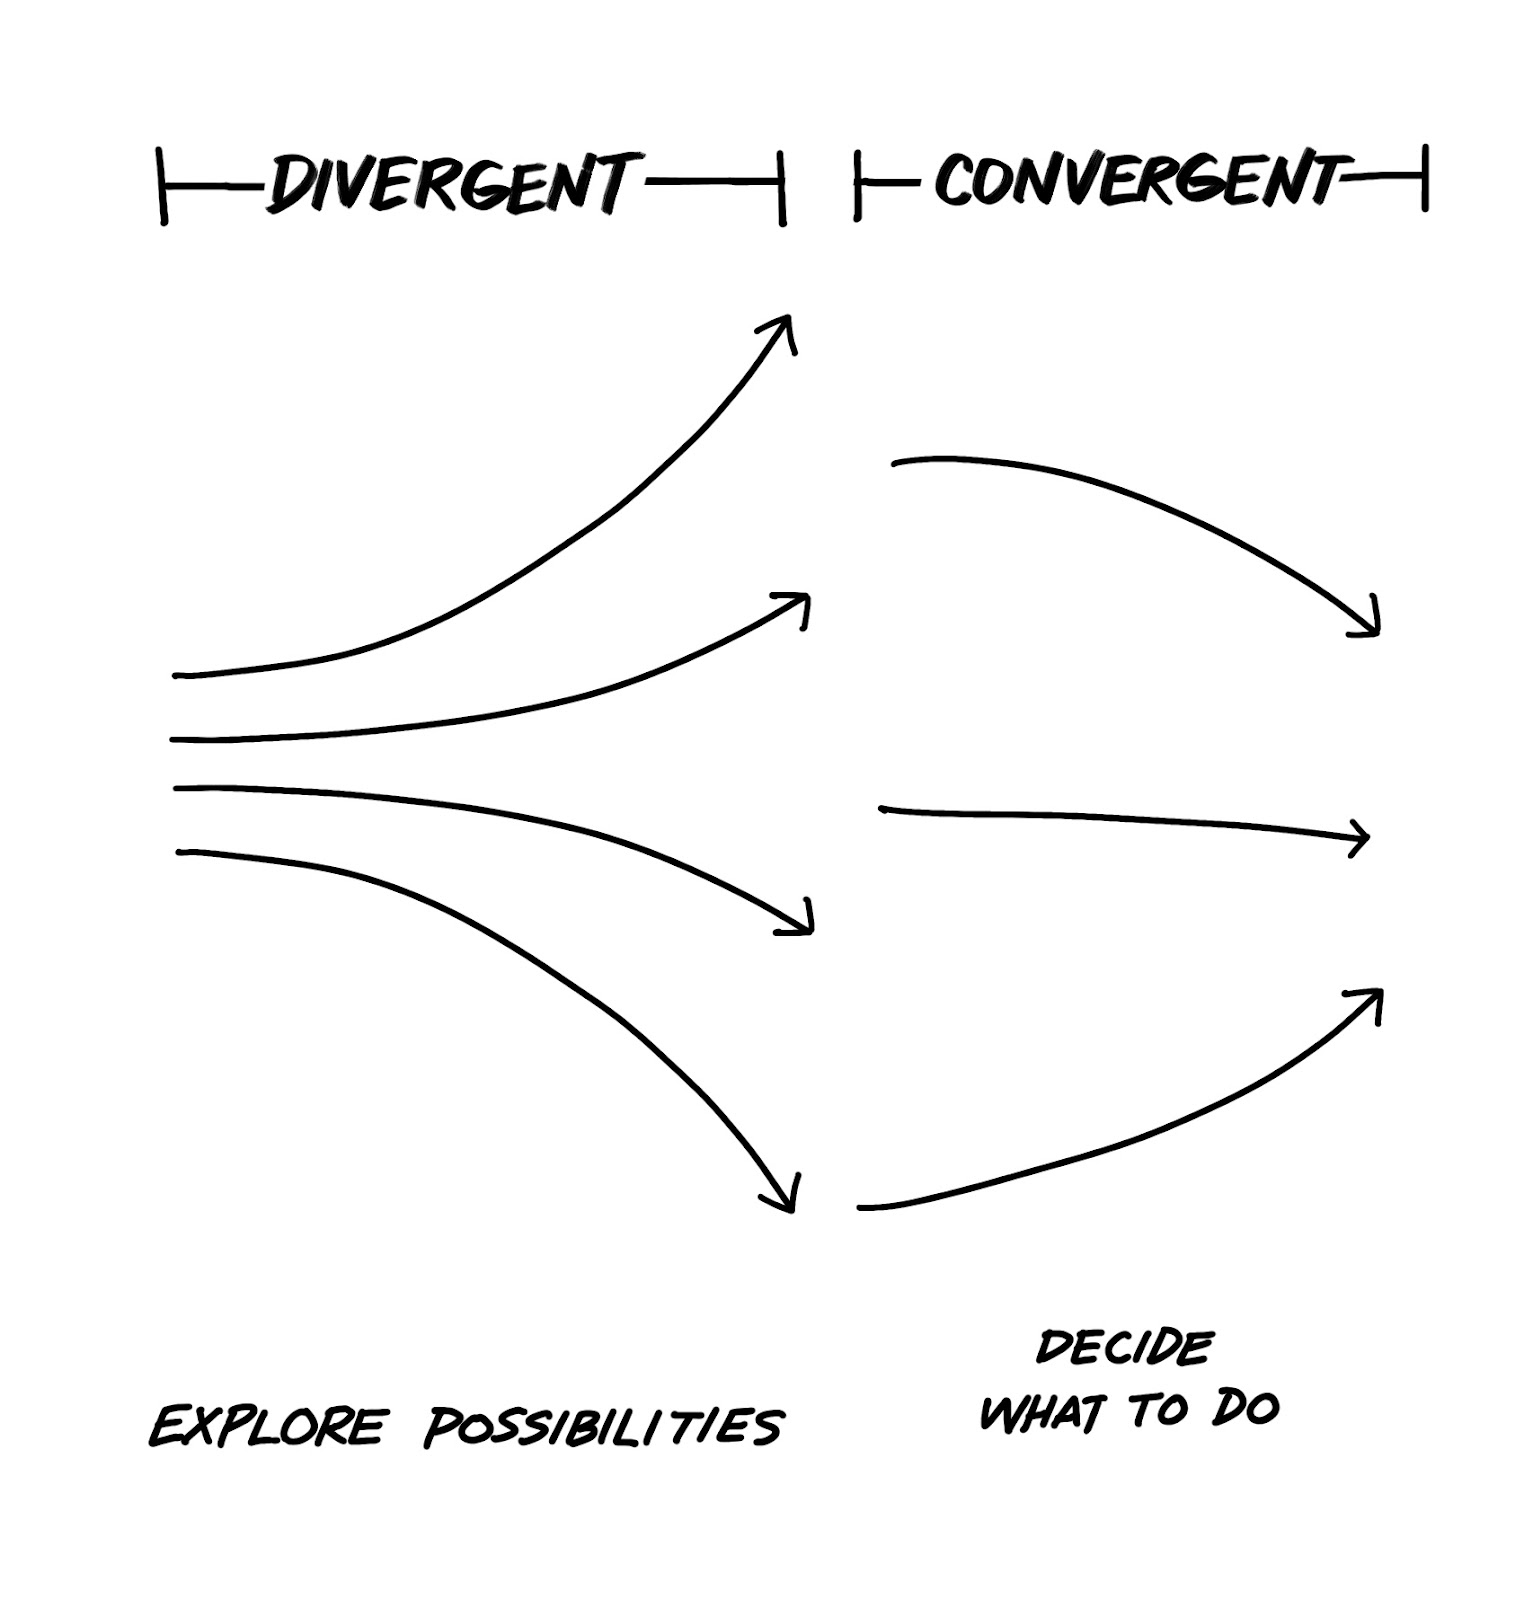 An image showing 'explore possibilities' with diverging lines, and 'decide what to do' with converging lines